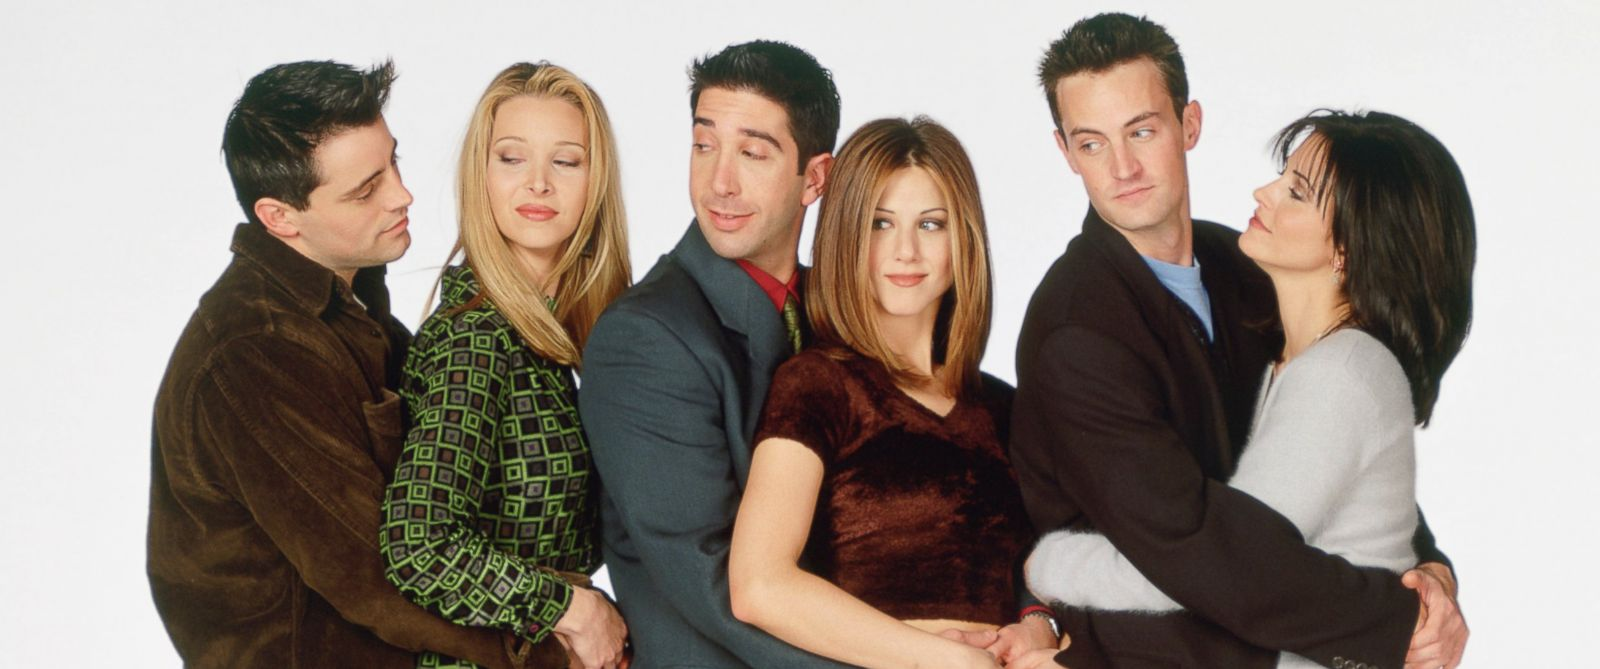 """PHOTO: From left, Matt LeBlanc, Lisa Kudrow, David Schwimmer, Jennifer Aniston, Matthew Perry, and Courteney Cox are pictured in a promotional still for """"Friends."""""""